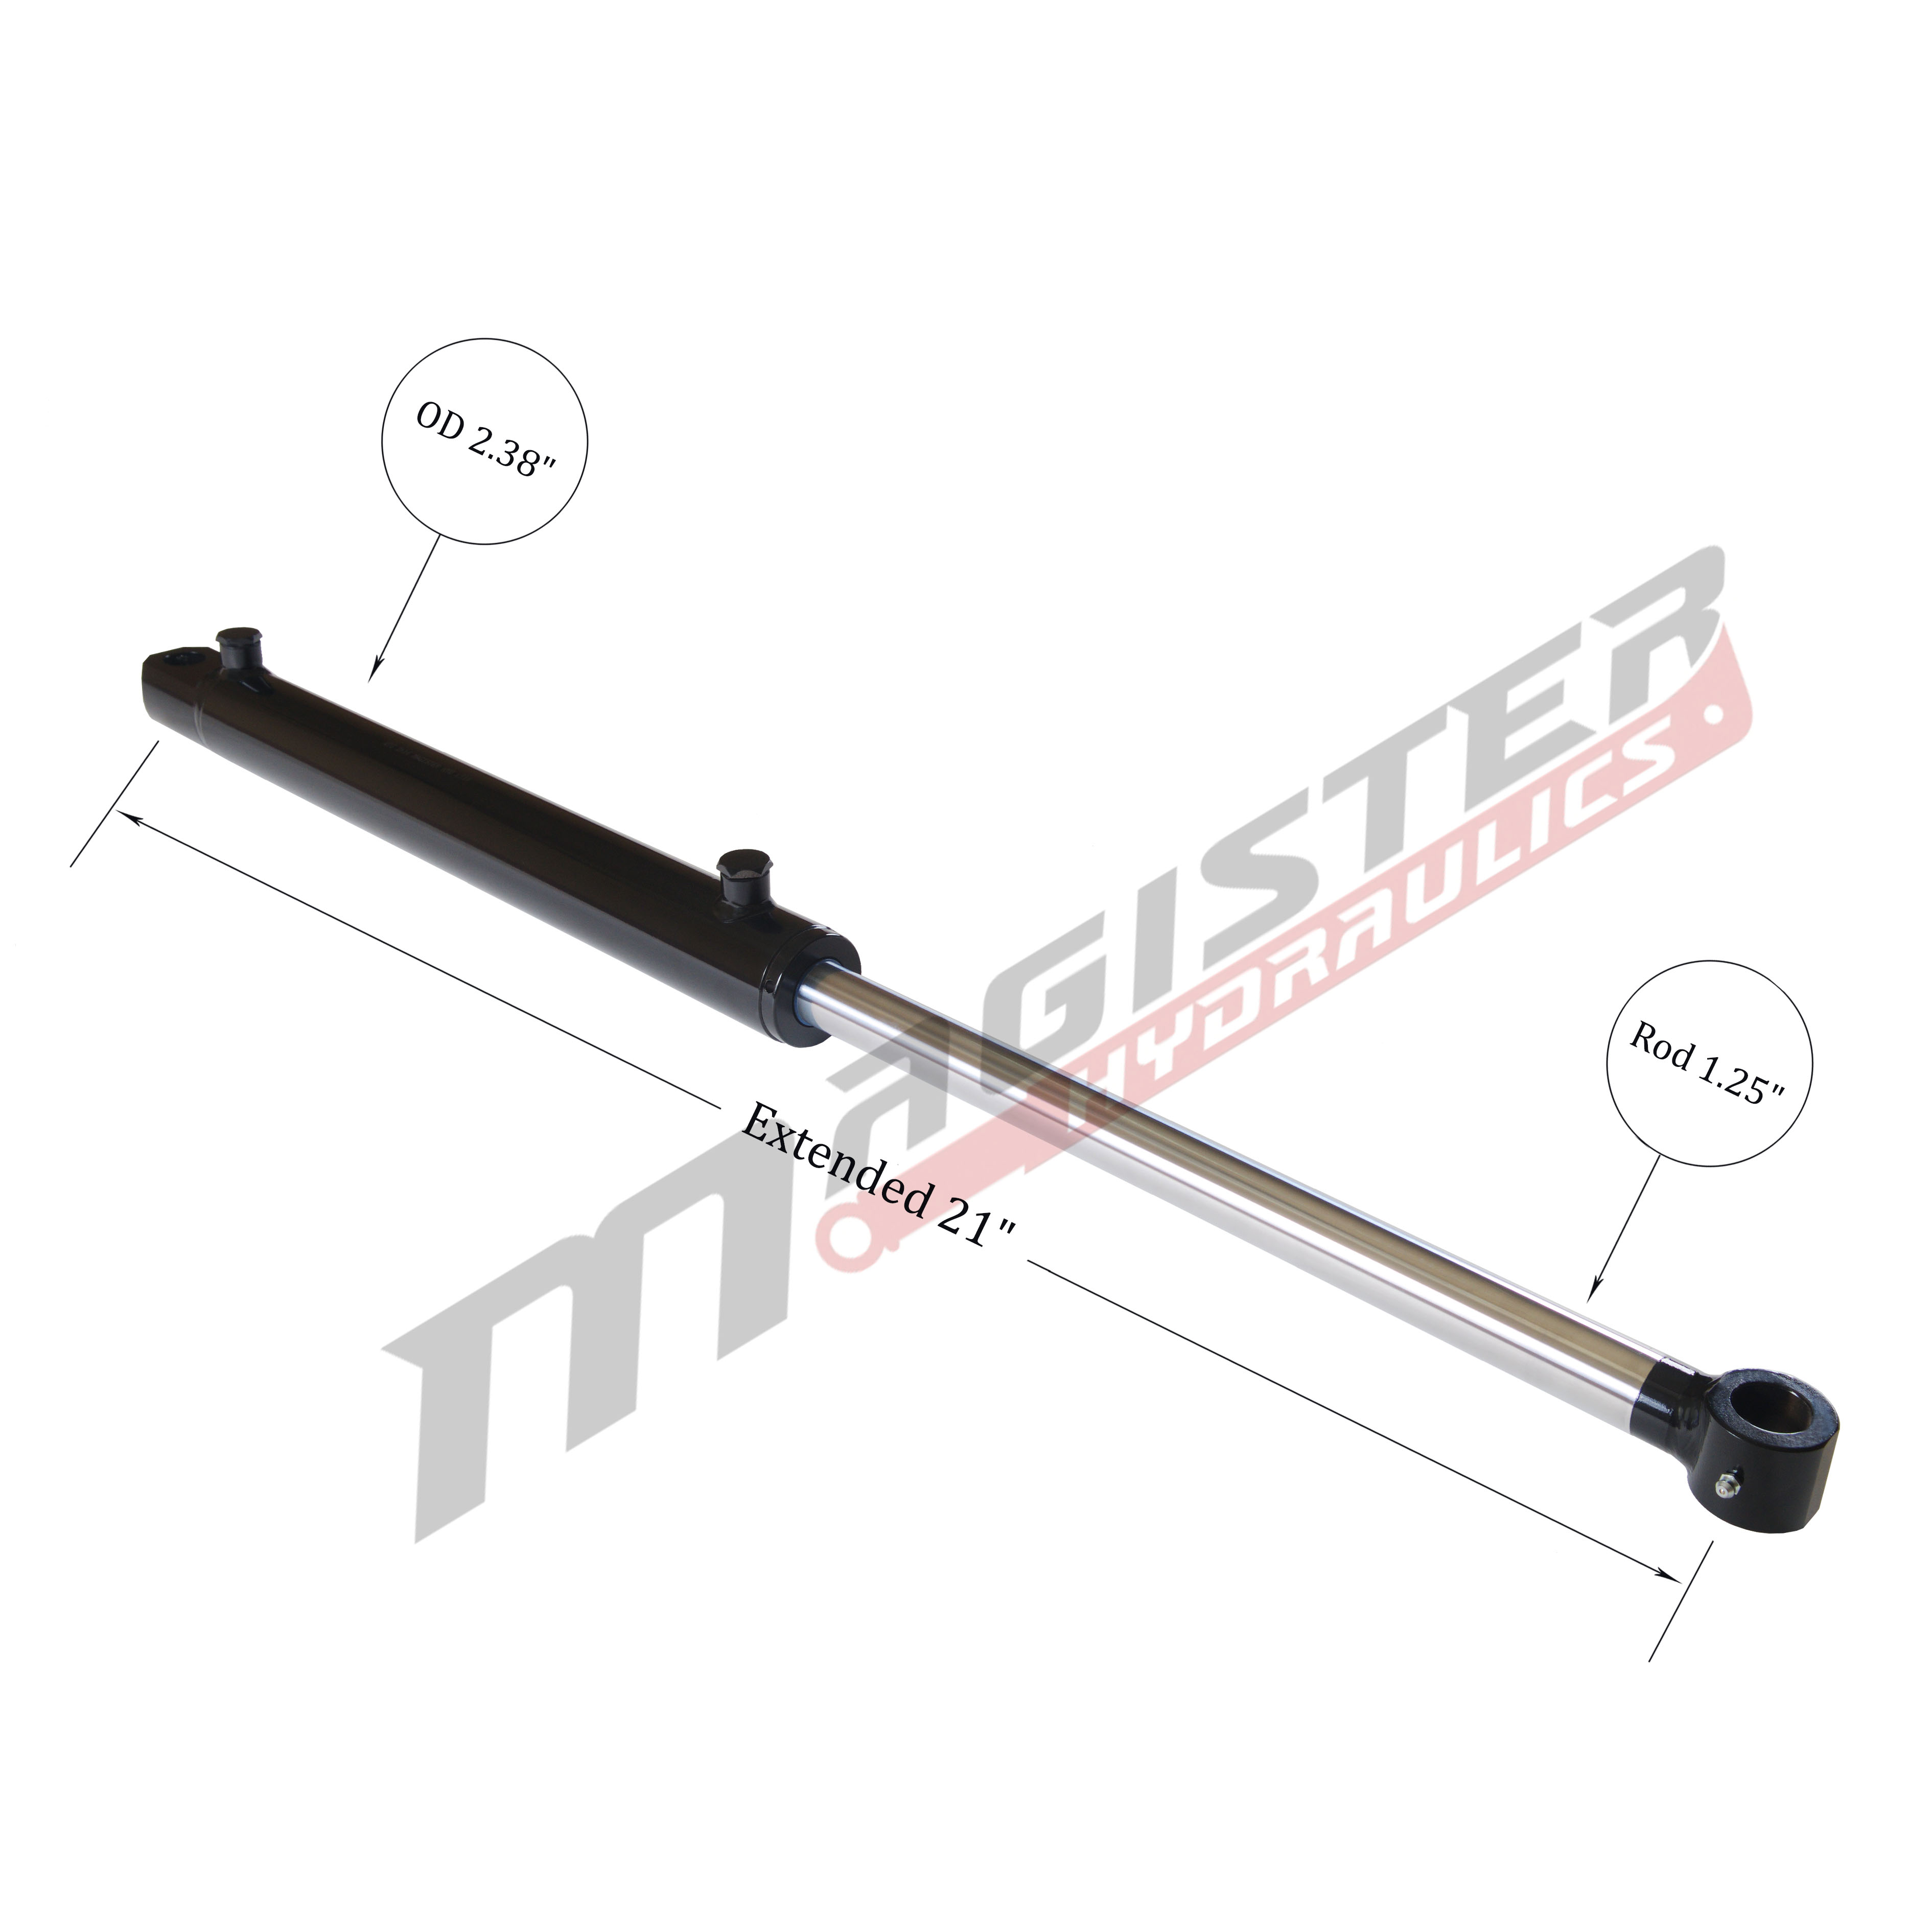 2 bore x 6 stroke hydraulic cylinder, welded tang double acting cylinder | Magister Hydraulics